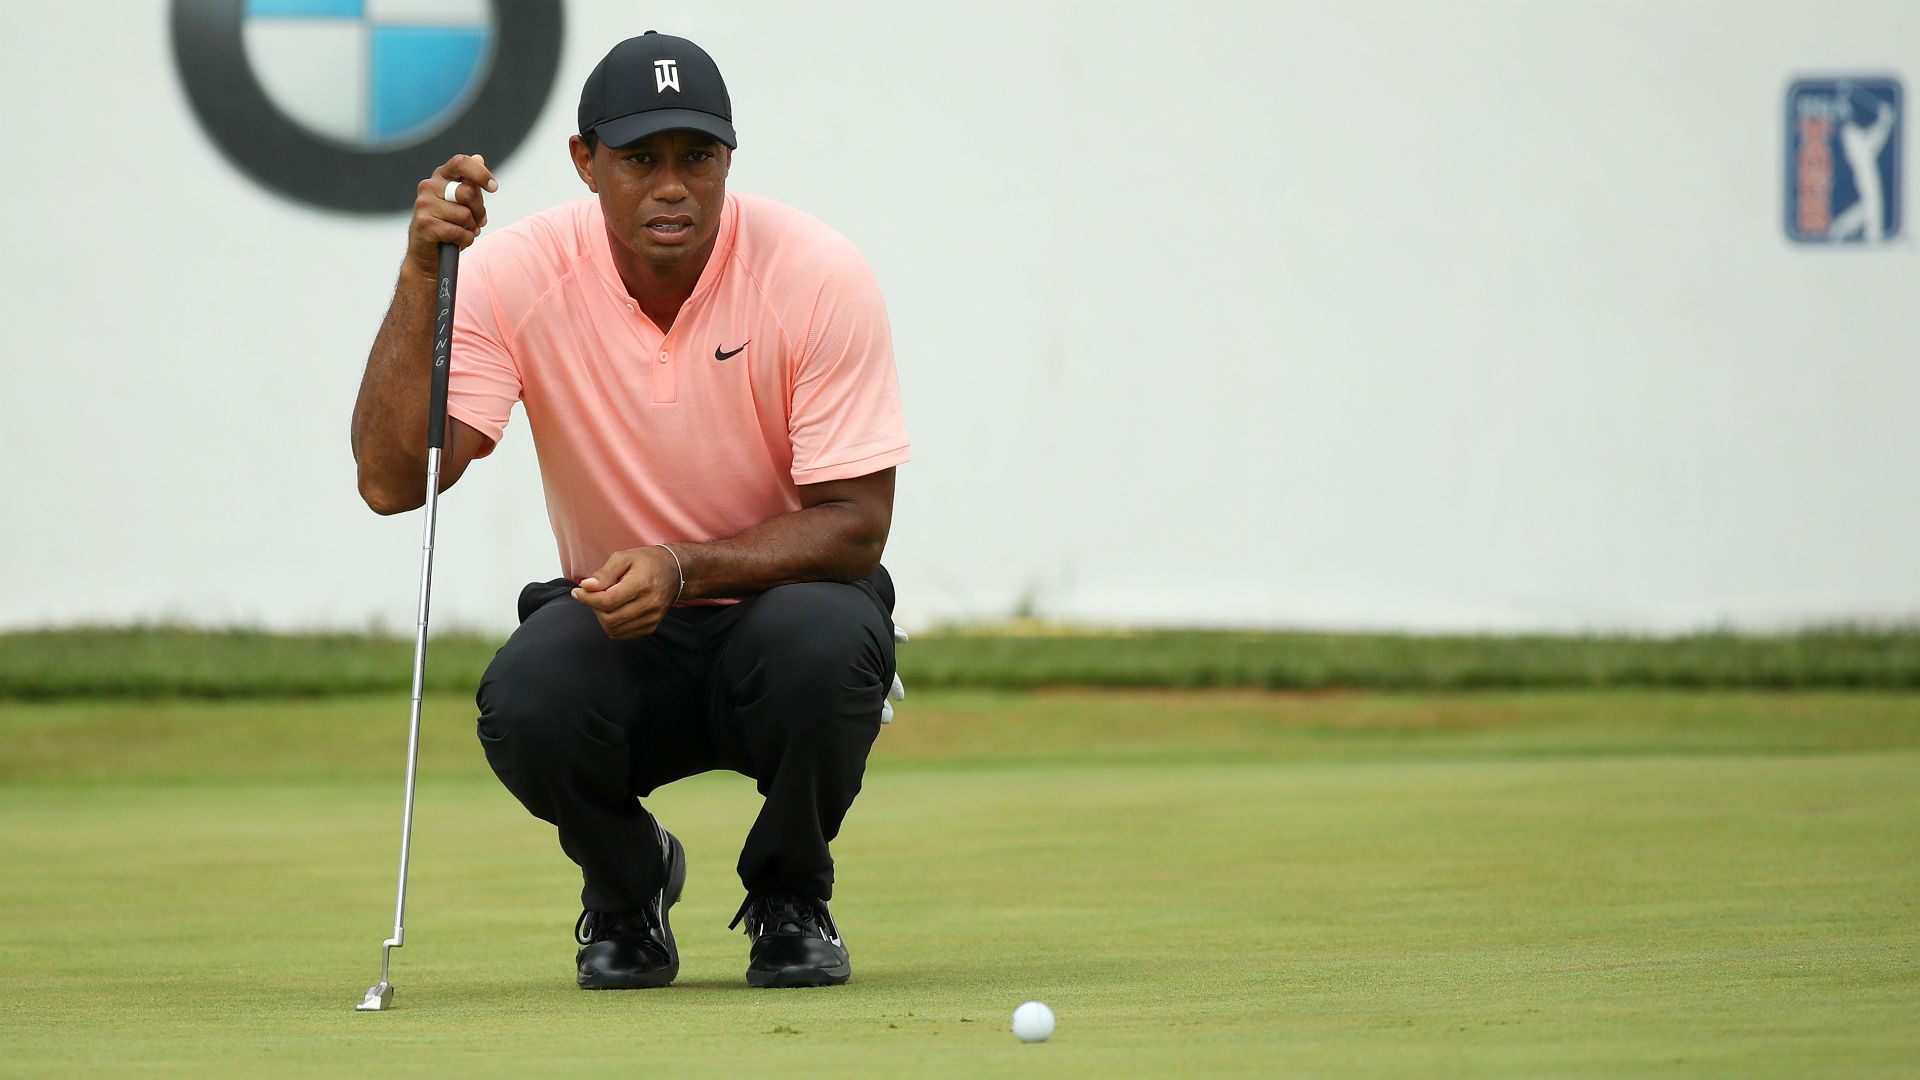 Tiger Woods finishes sixth at BMW Championship, qualifies for 2019 US Open